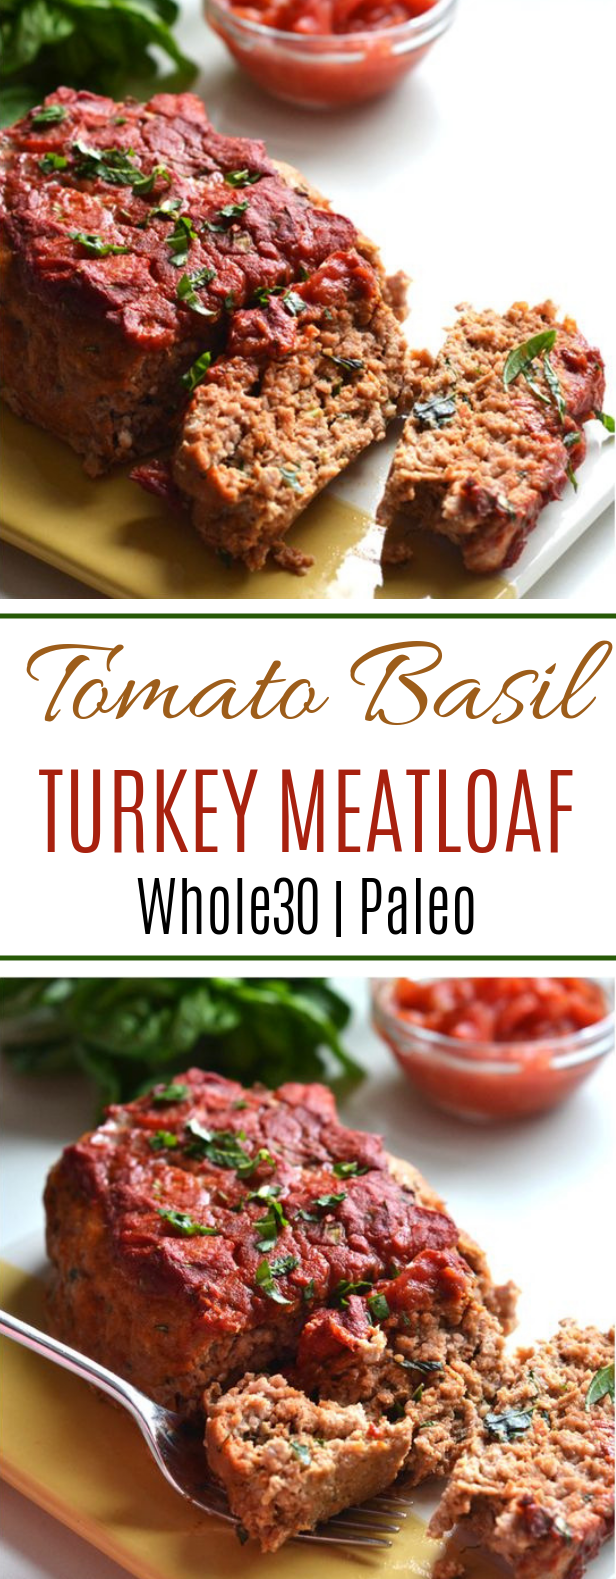 Tomato Basil Turkey Meatloaf #whole30 #paleo